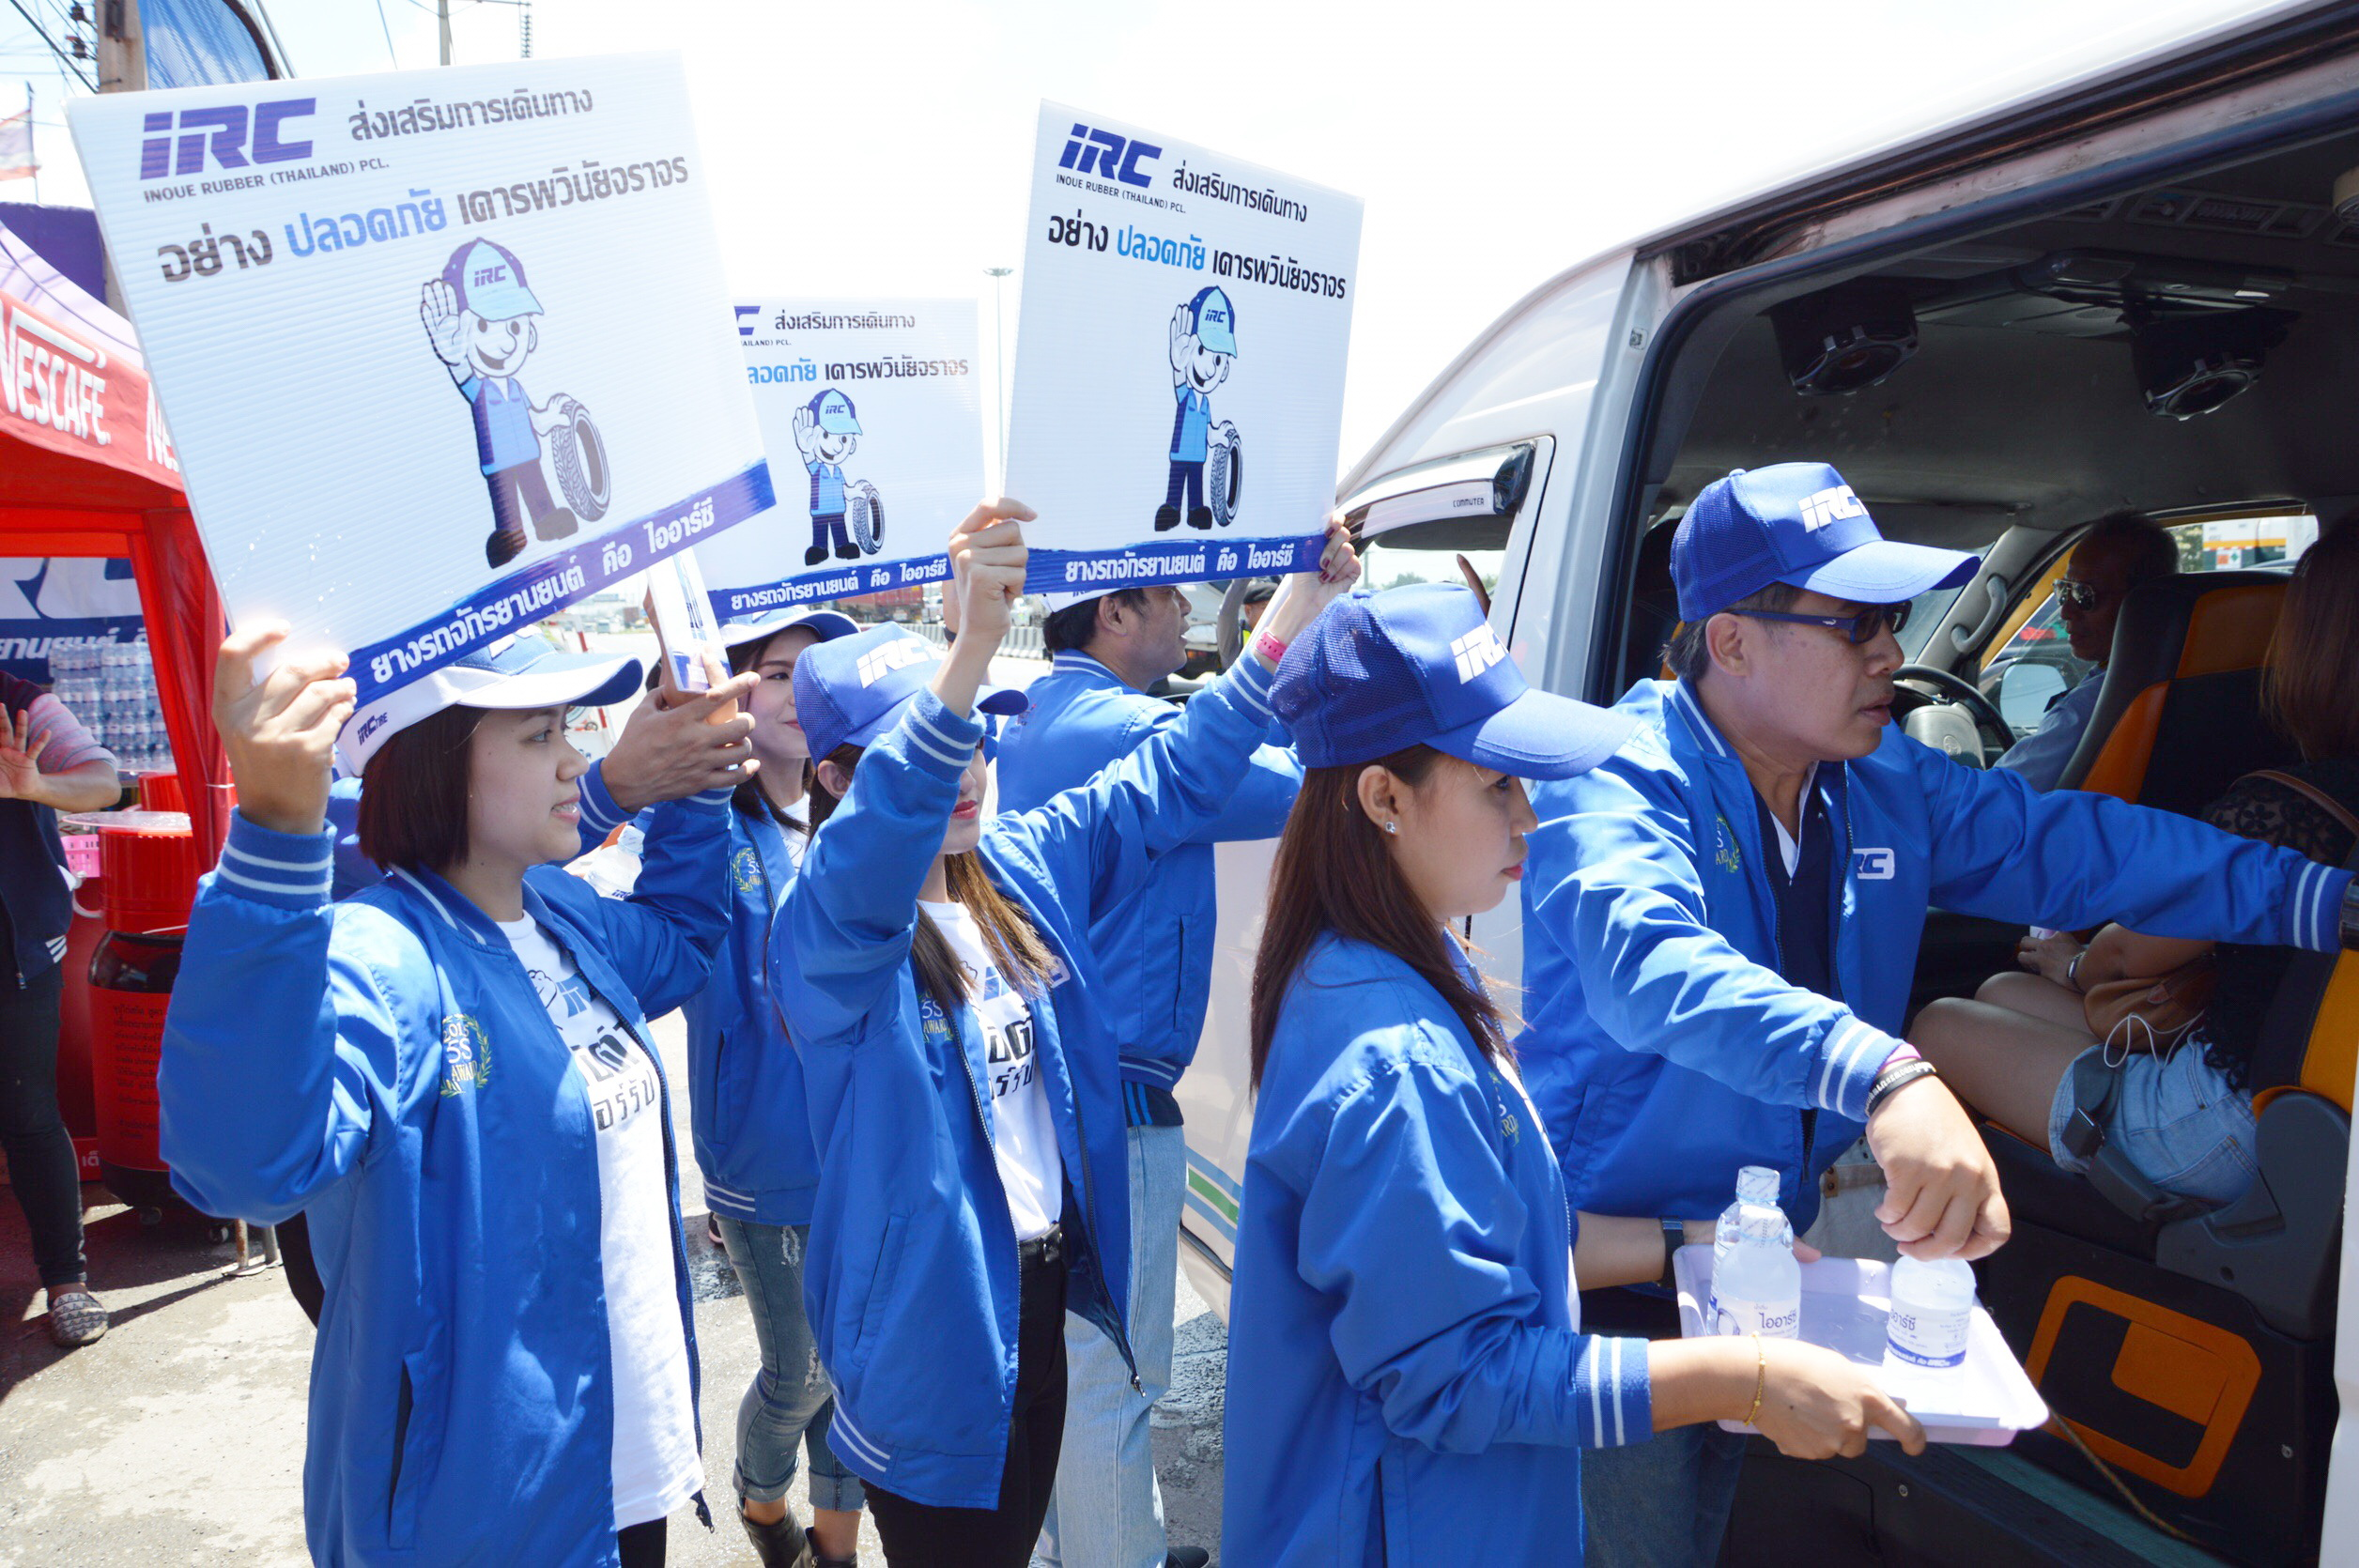 Social Responsibility Activity  IRC Safety Driving Campaign during Songkran Festival